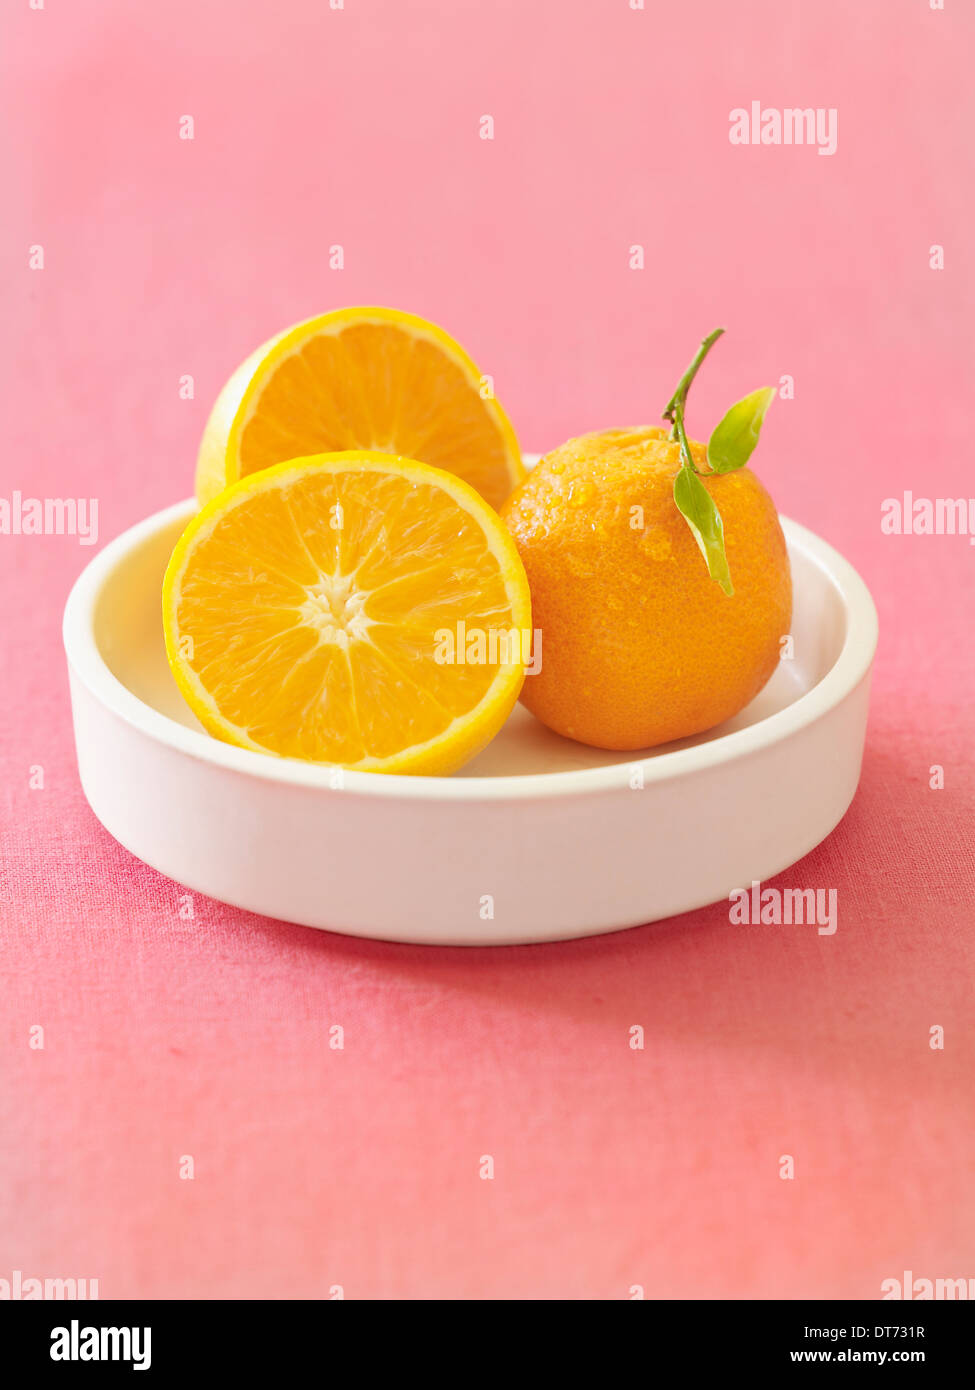 A white bowl with oranges whole and cut on a pink fabric background. - Stock Image